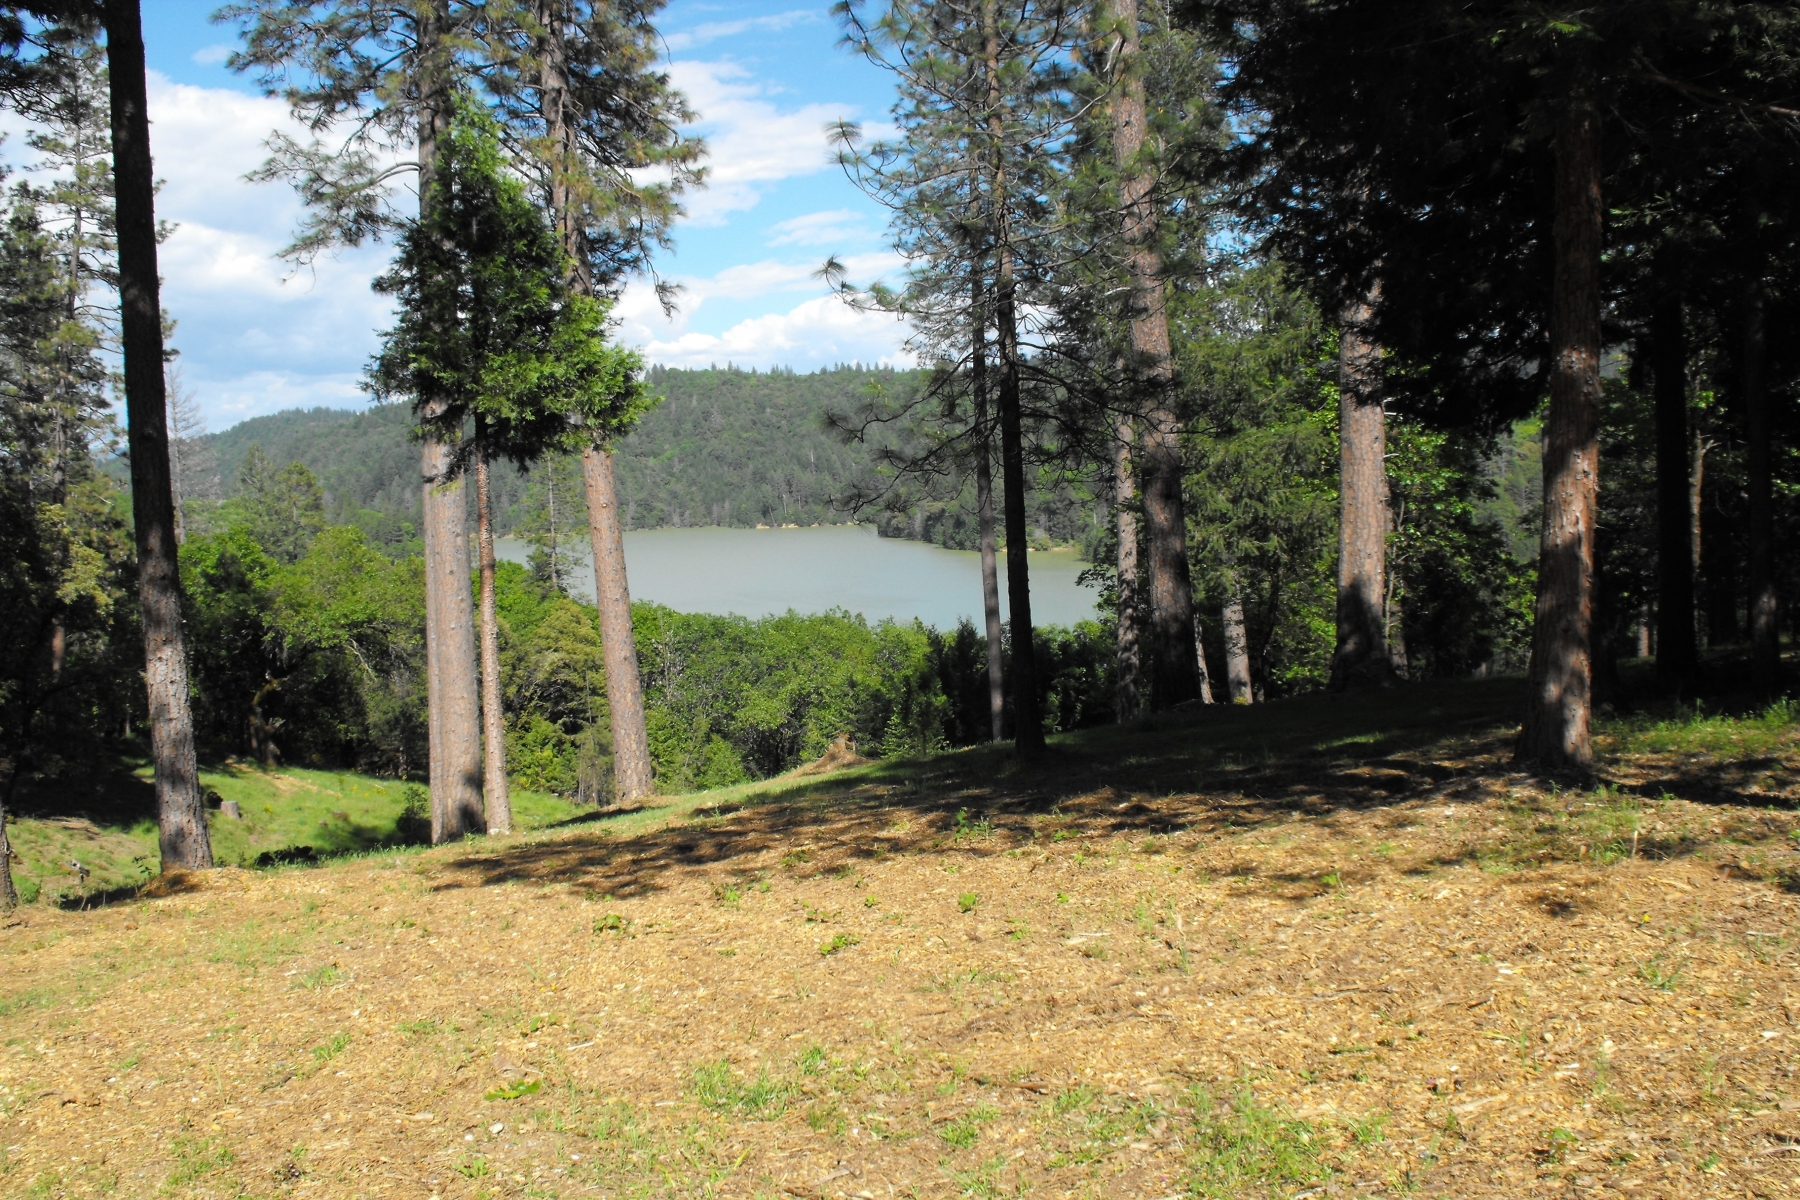 Additional photo for property listing at 19214 Country Lane, Grass Valley, CA 19214 Country Lane Grass Valley, California 95945 United States